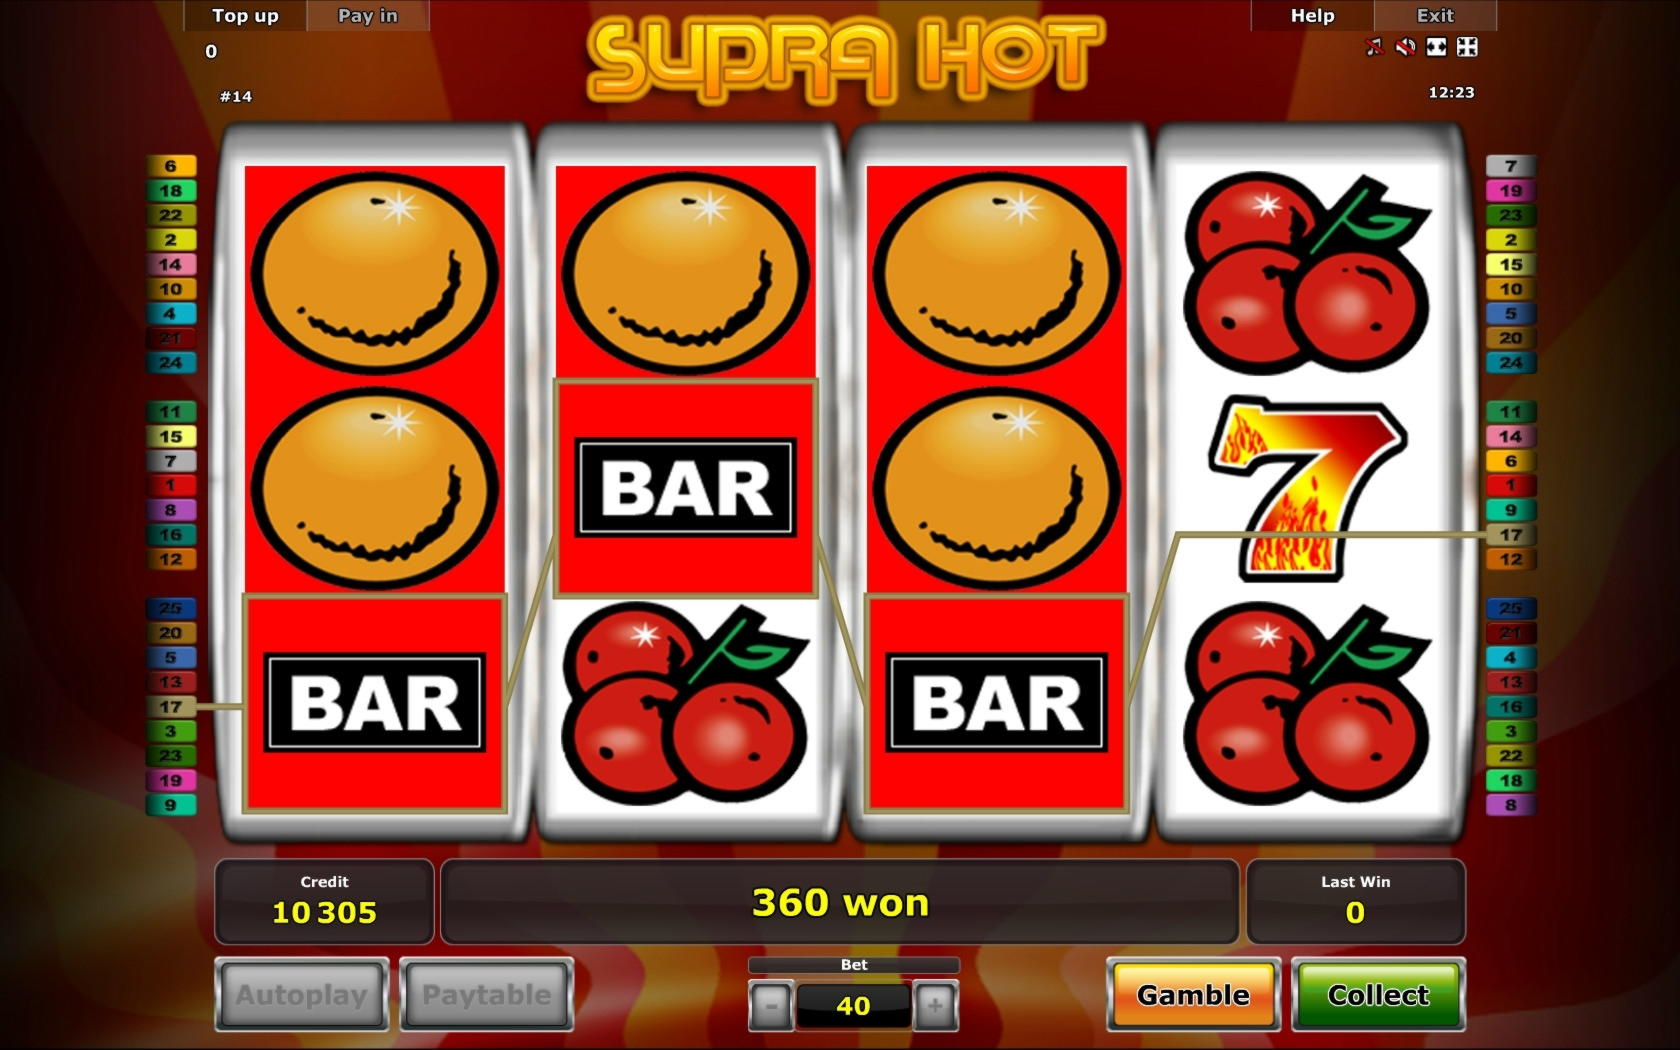 550% Deposit match bonus at Slots Billion Casino